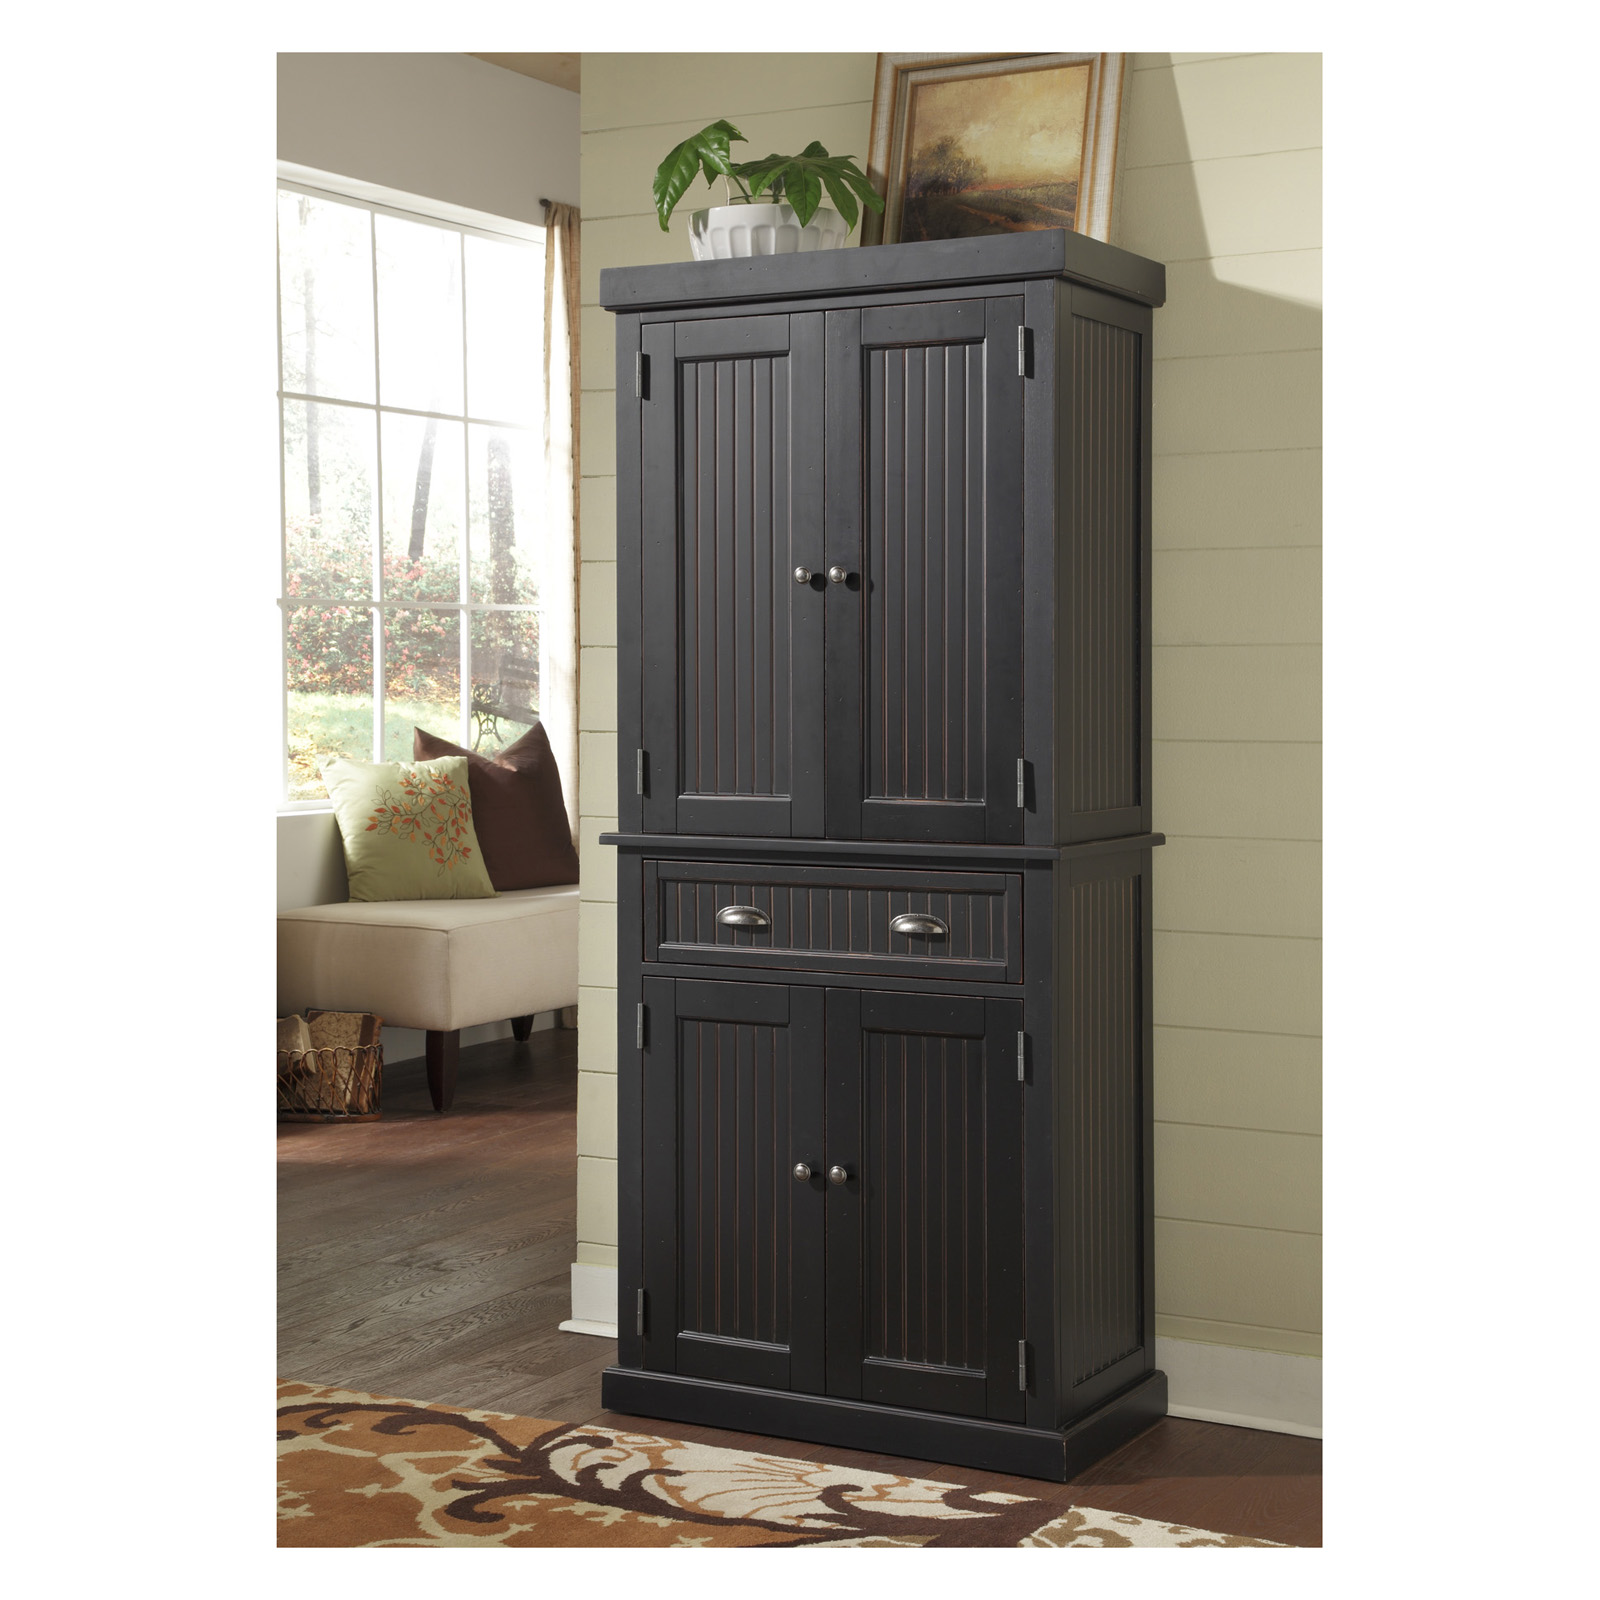 Nantucket Pantry Distressed Black Pantry Cabinets At Hayneedle